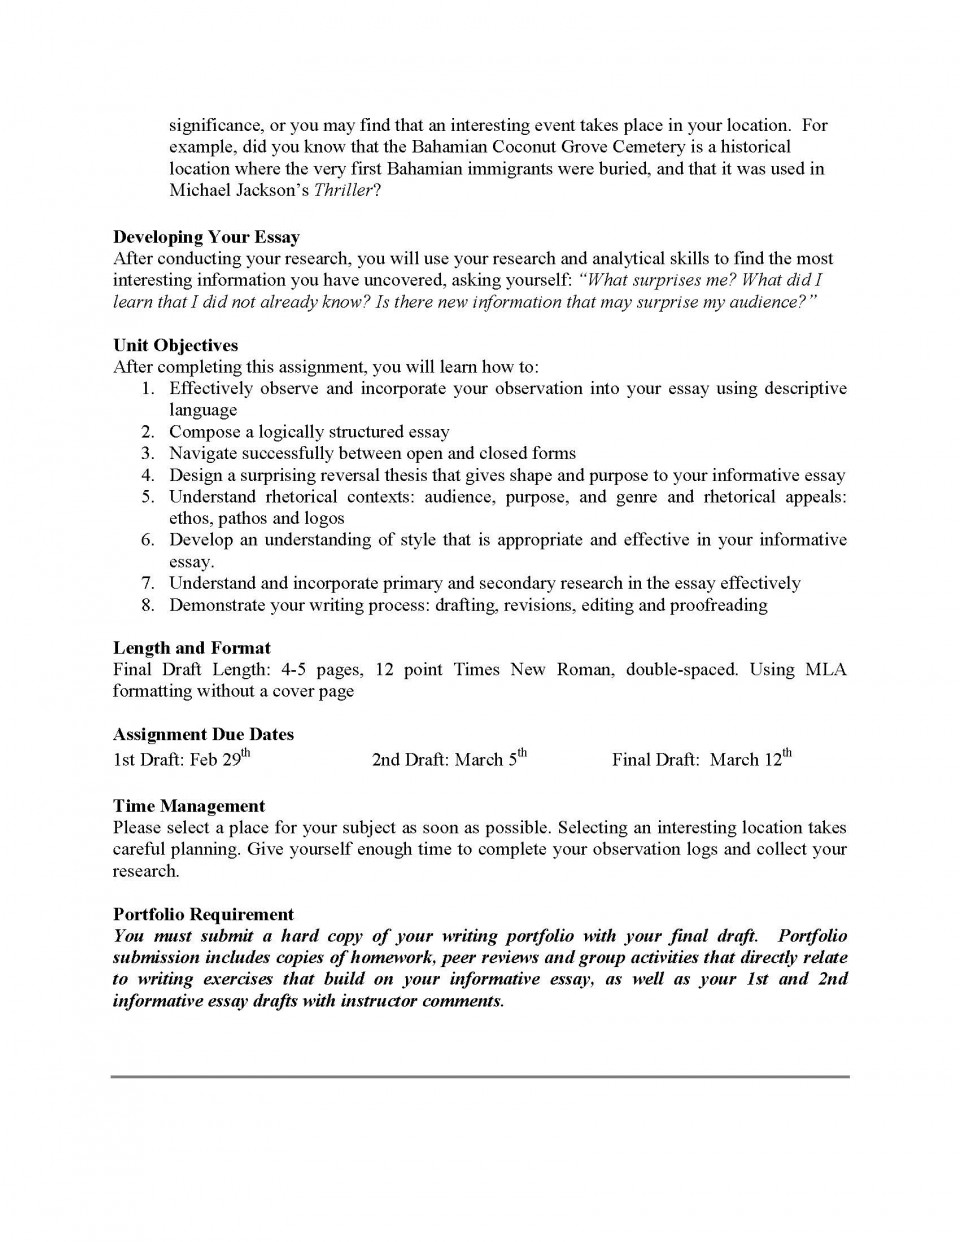 014 Informative Essay Unit Assignment Page 2 Dreaded Outline Template Pdf Topics For 5th Grade Rubric Fsa 960